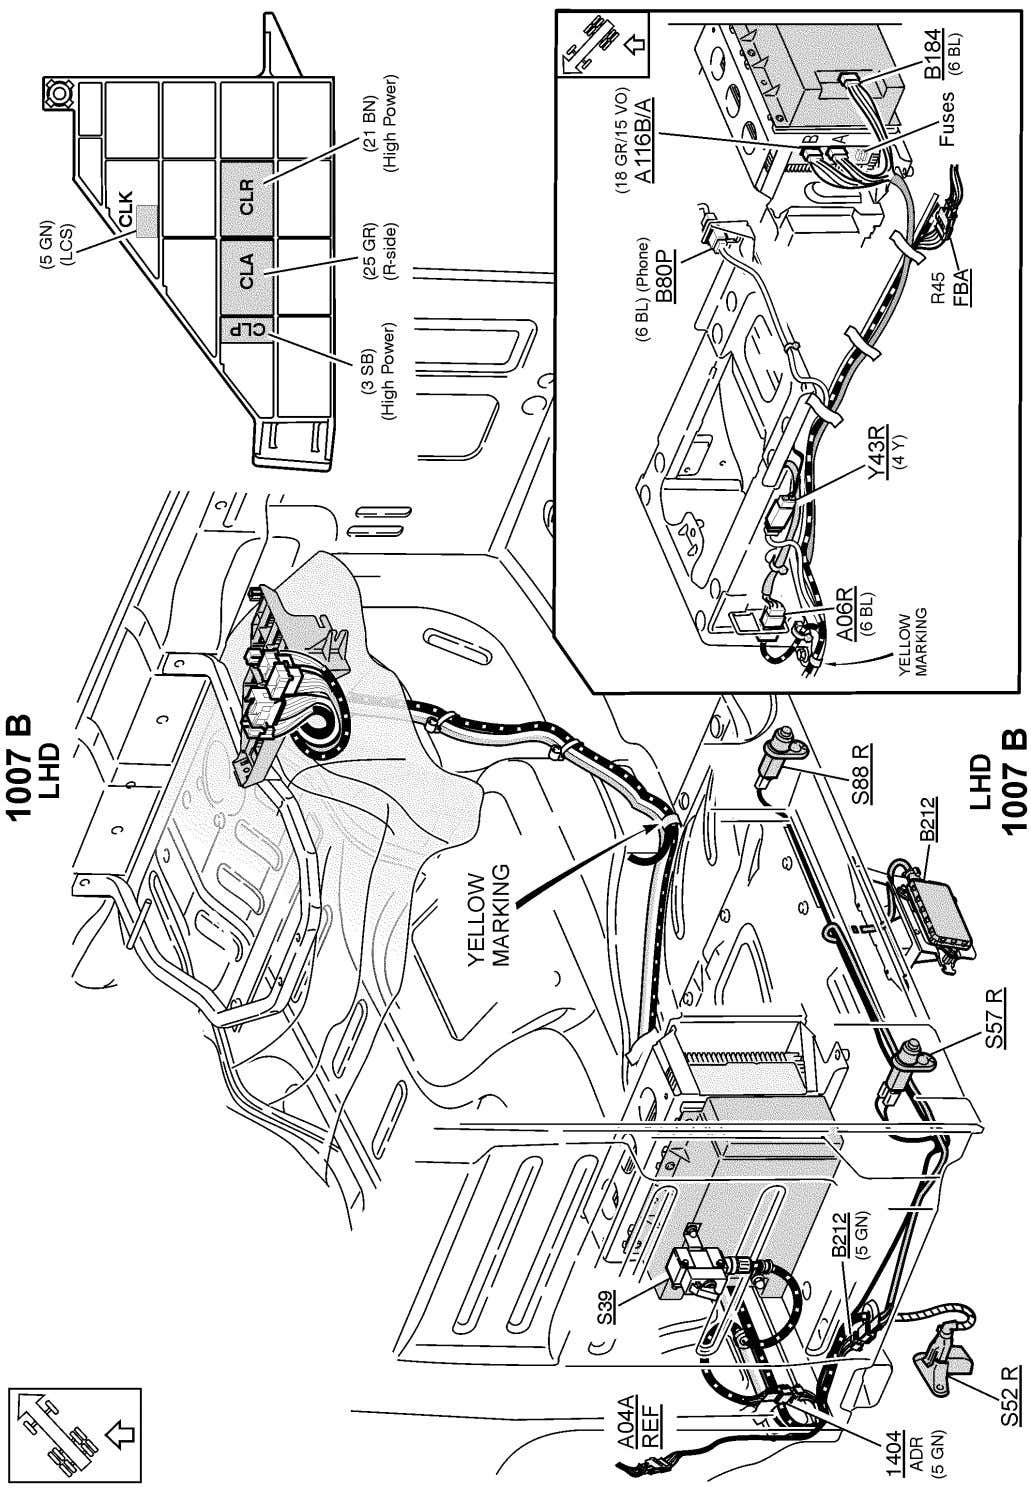 T3060692 Page 150 (298) Wiring diagram